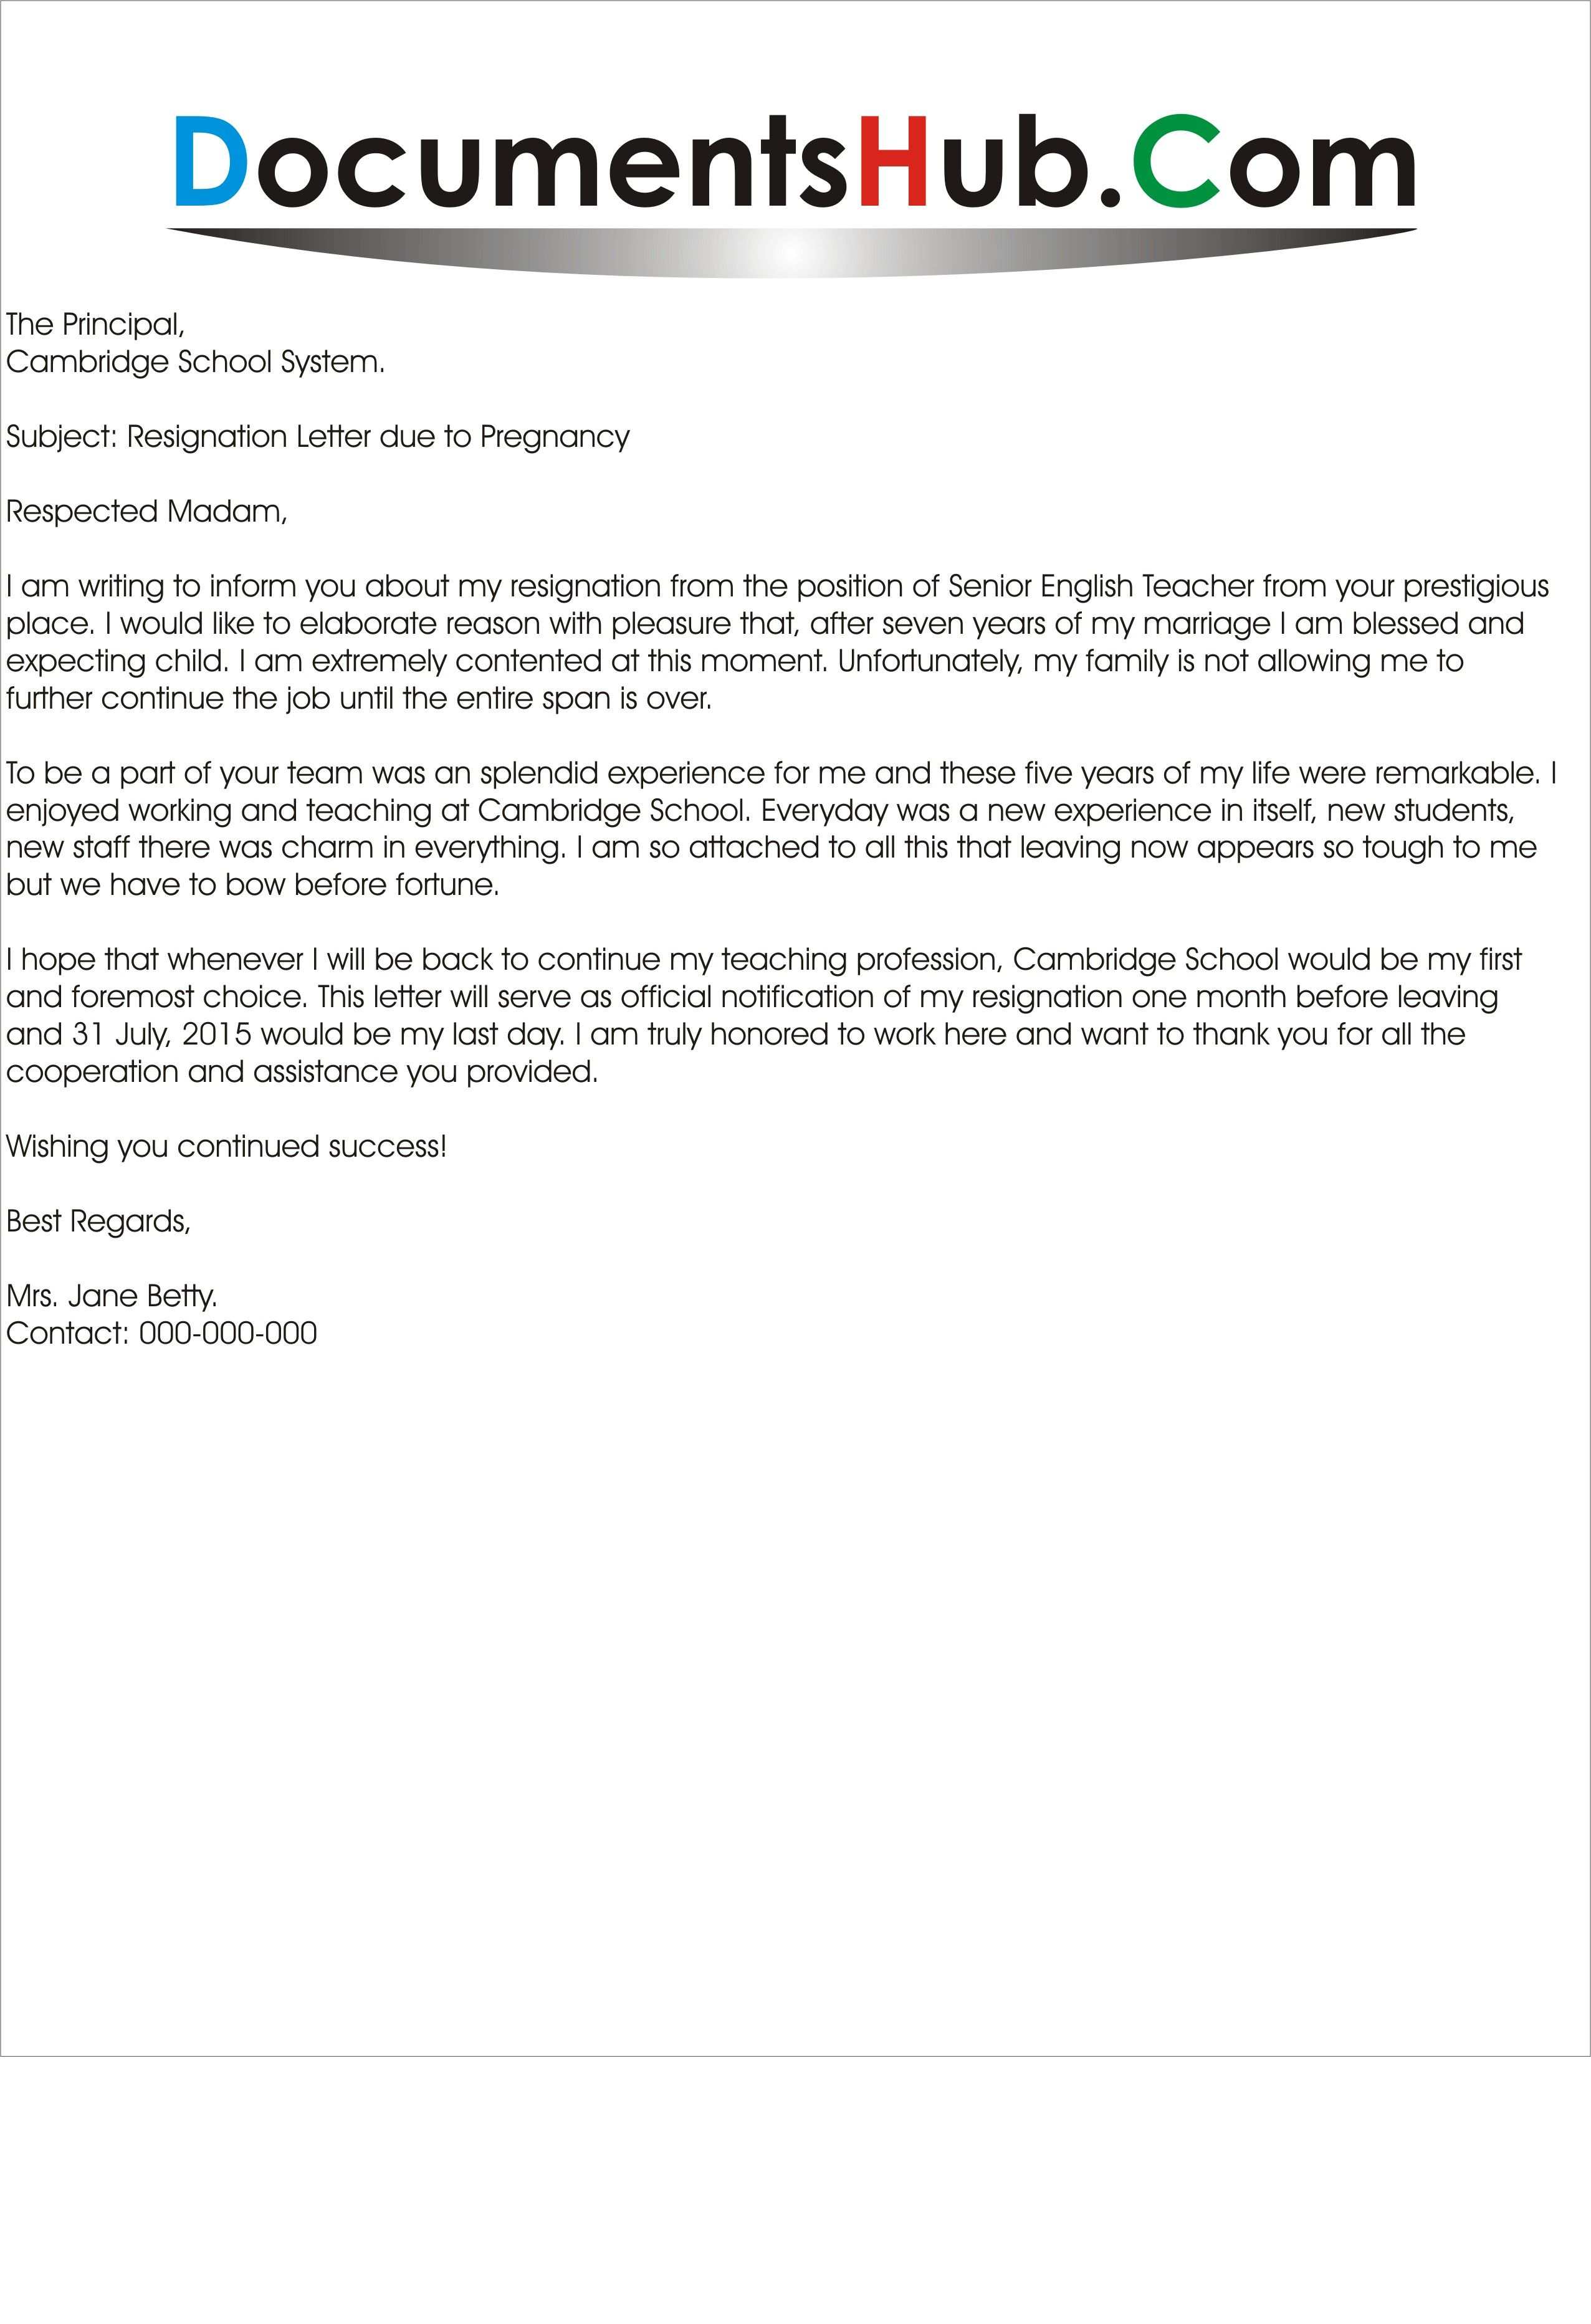 Maternity Leave Request Letter Maternity Leave Application